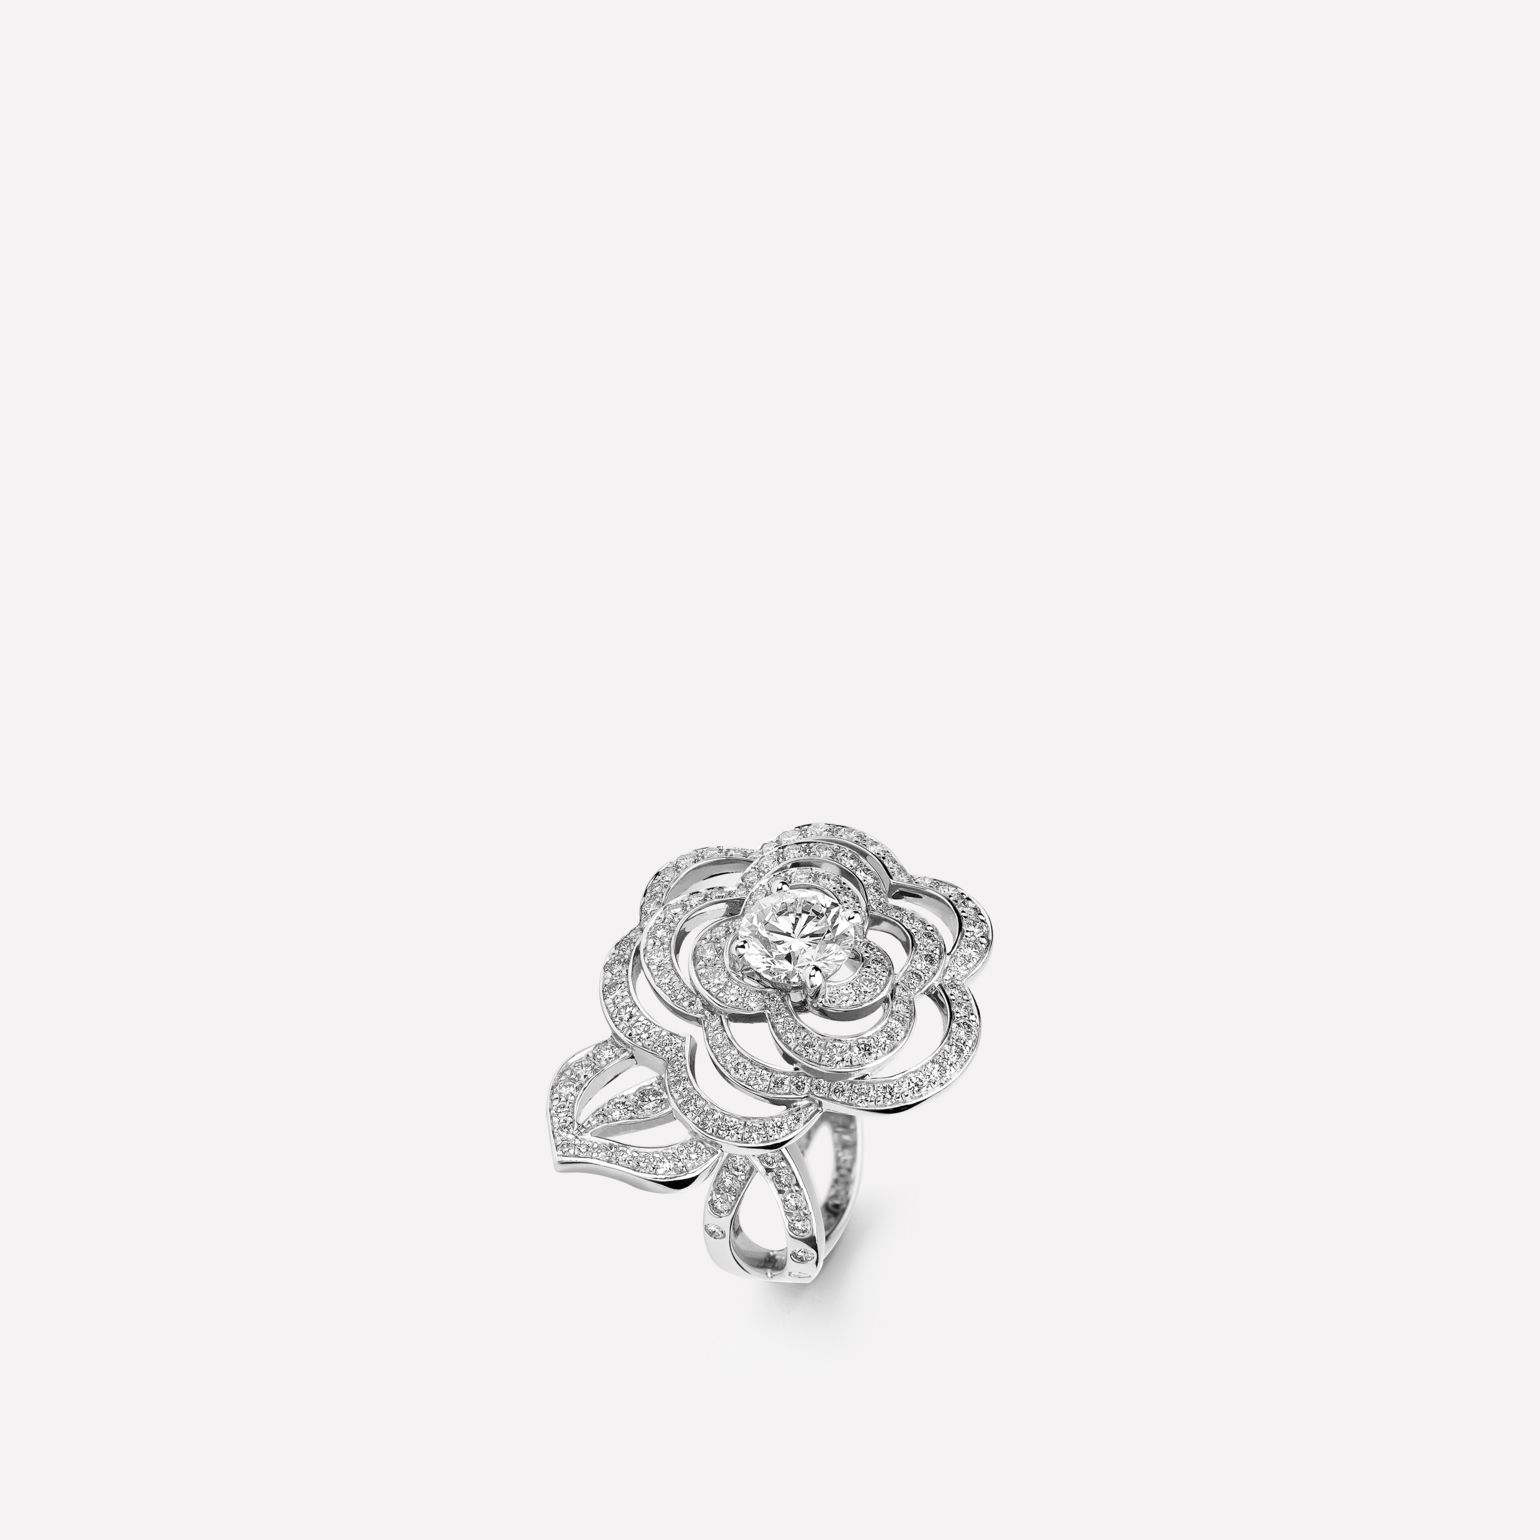 Camélia Ring Fil de Camélia ring in 18K white gold, diamonds and central diamond